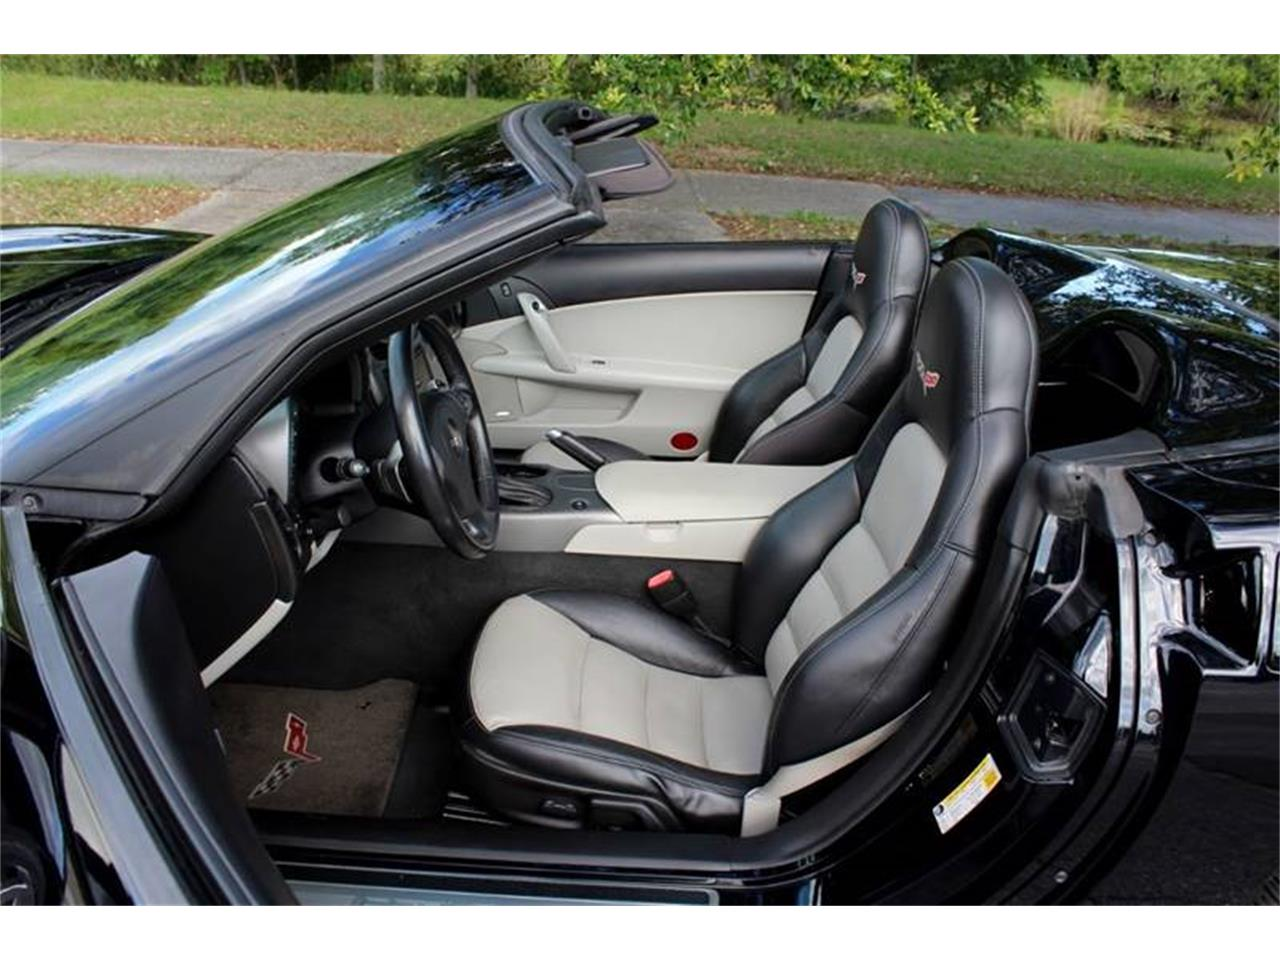 Large Picture of 2007 Corvette - $21,900.00 Offered by PJ's Auto World - Q12D